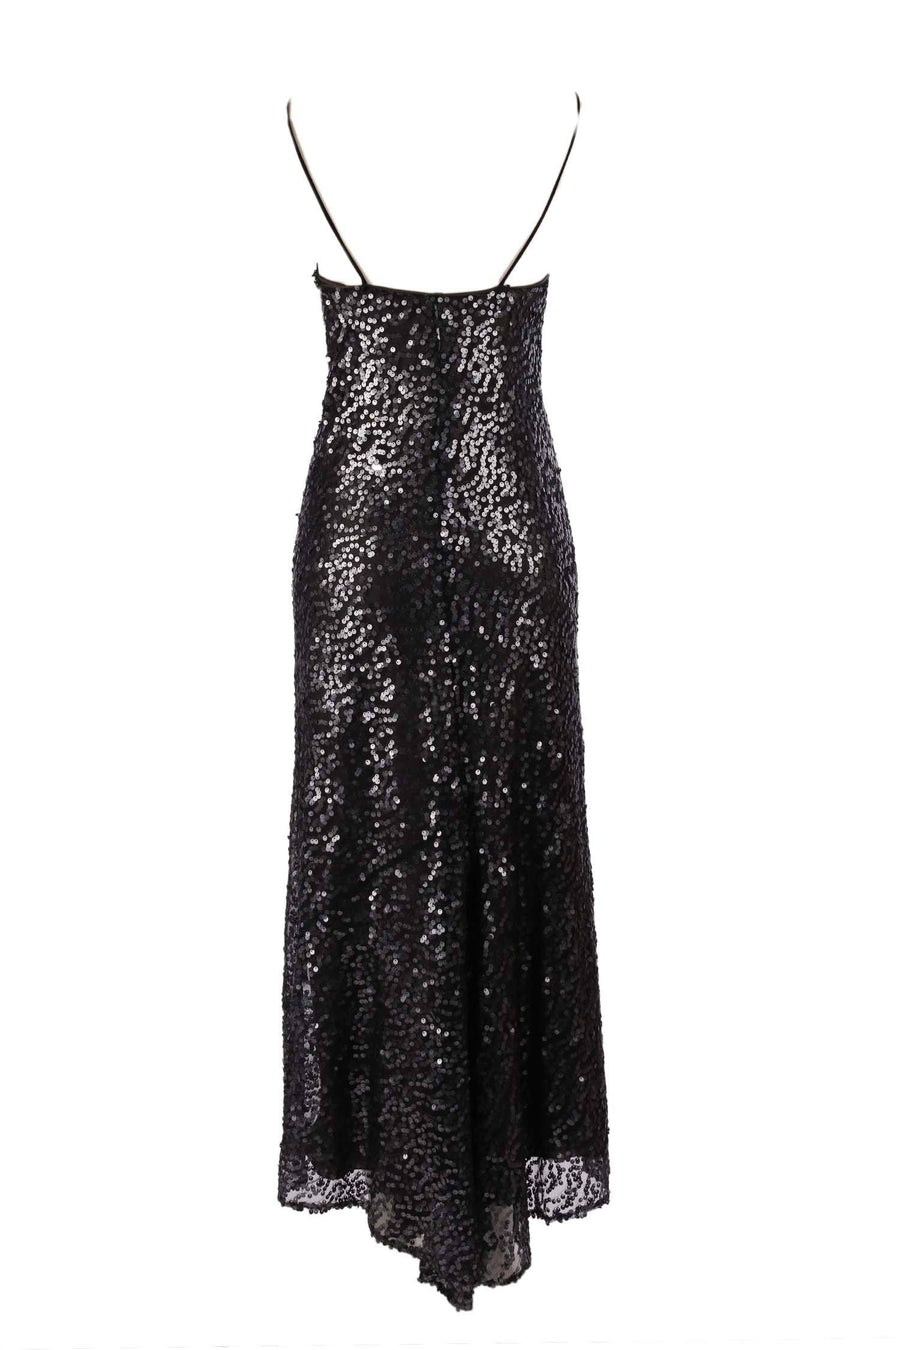 Shop Online Slip Sequin Dress with Belt by Lucy Laurita - Leiela  Frockaholics Dresses